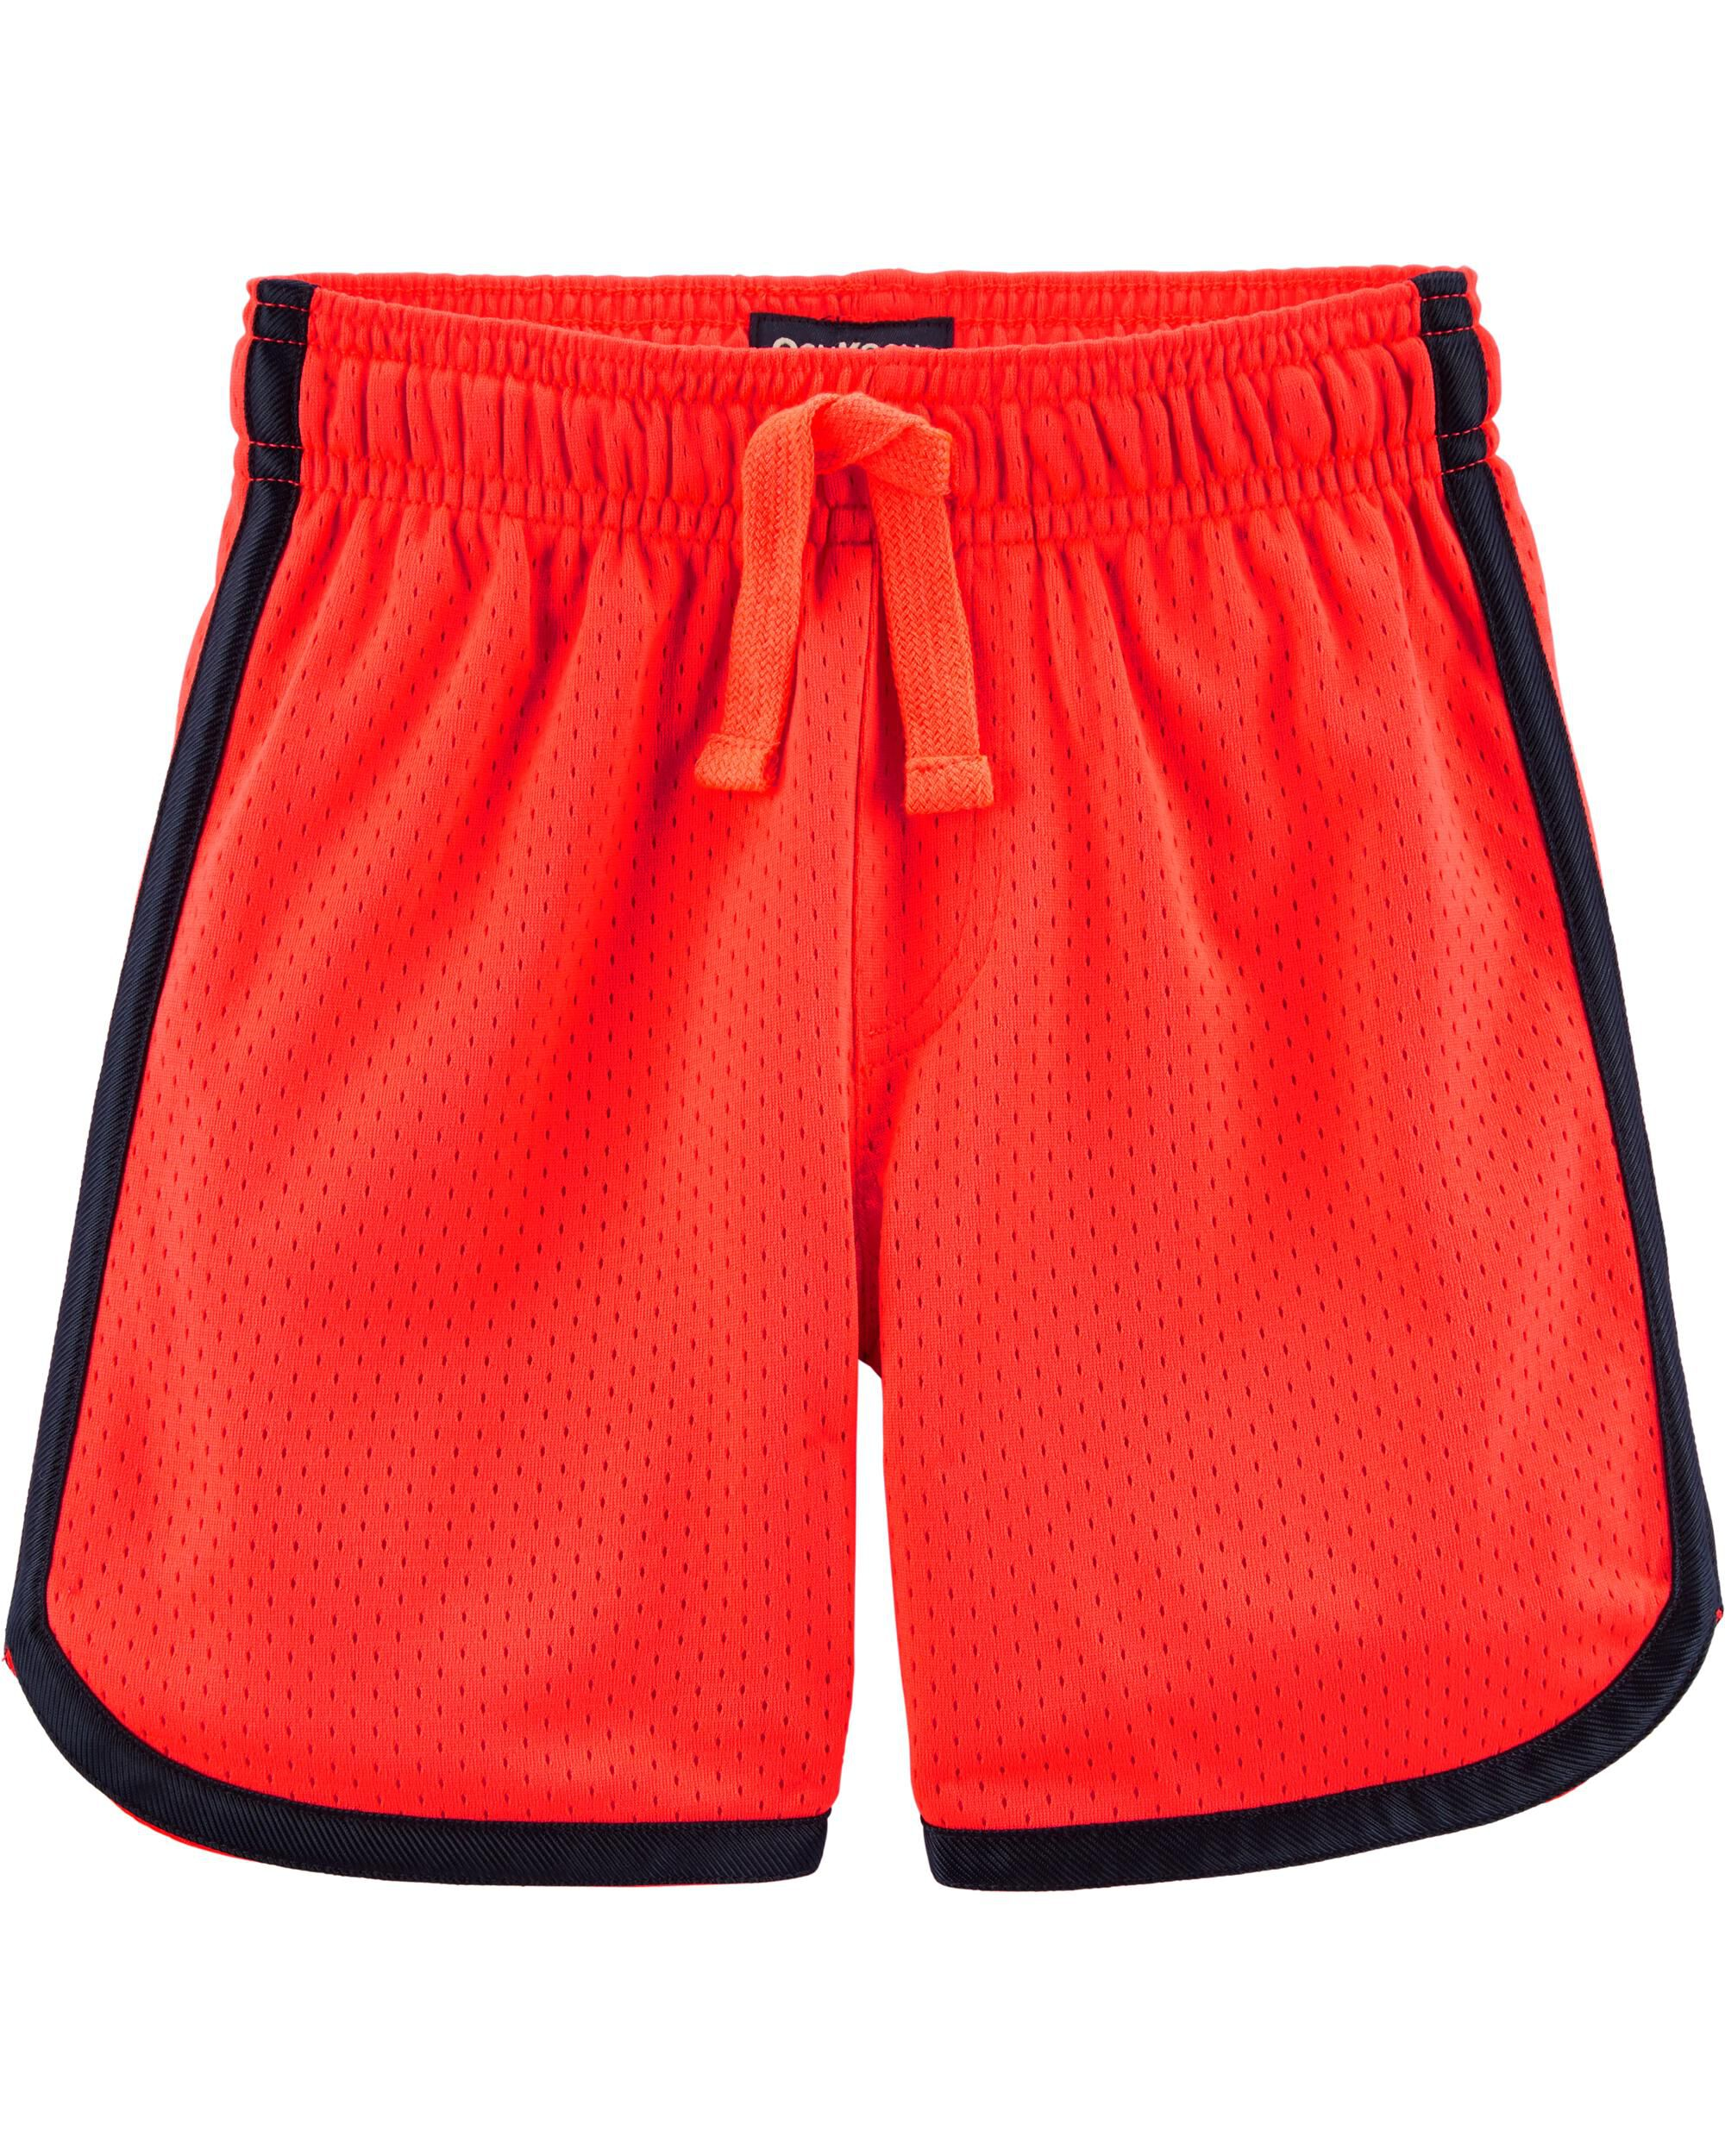 *Clearance*  Neon Mesh Basketball Shorts